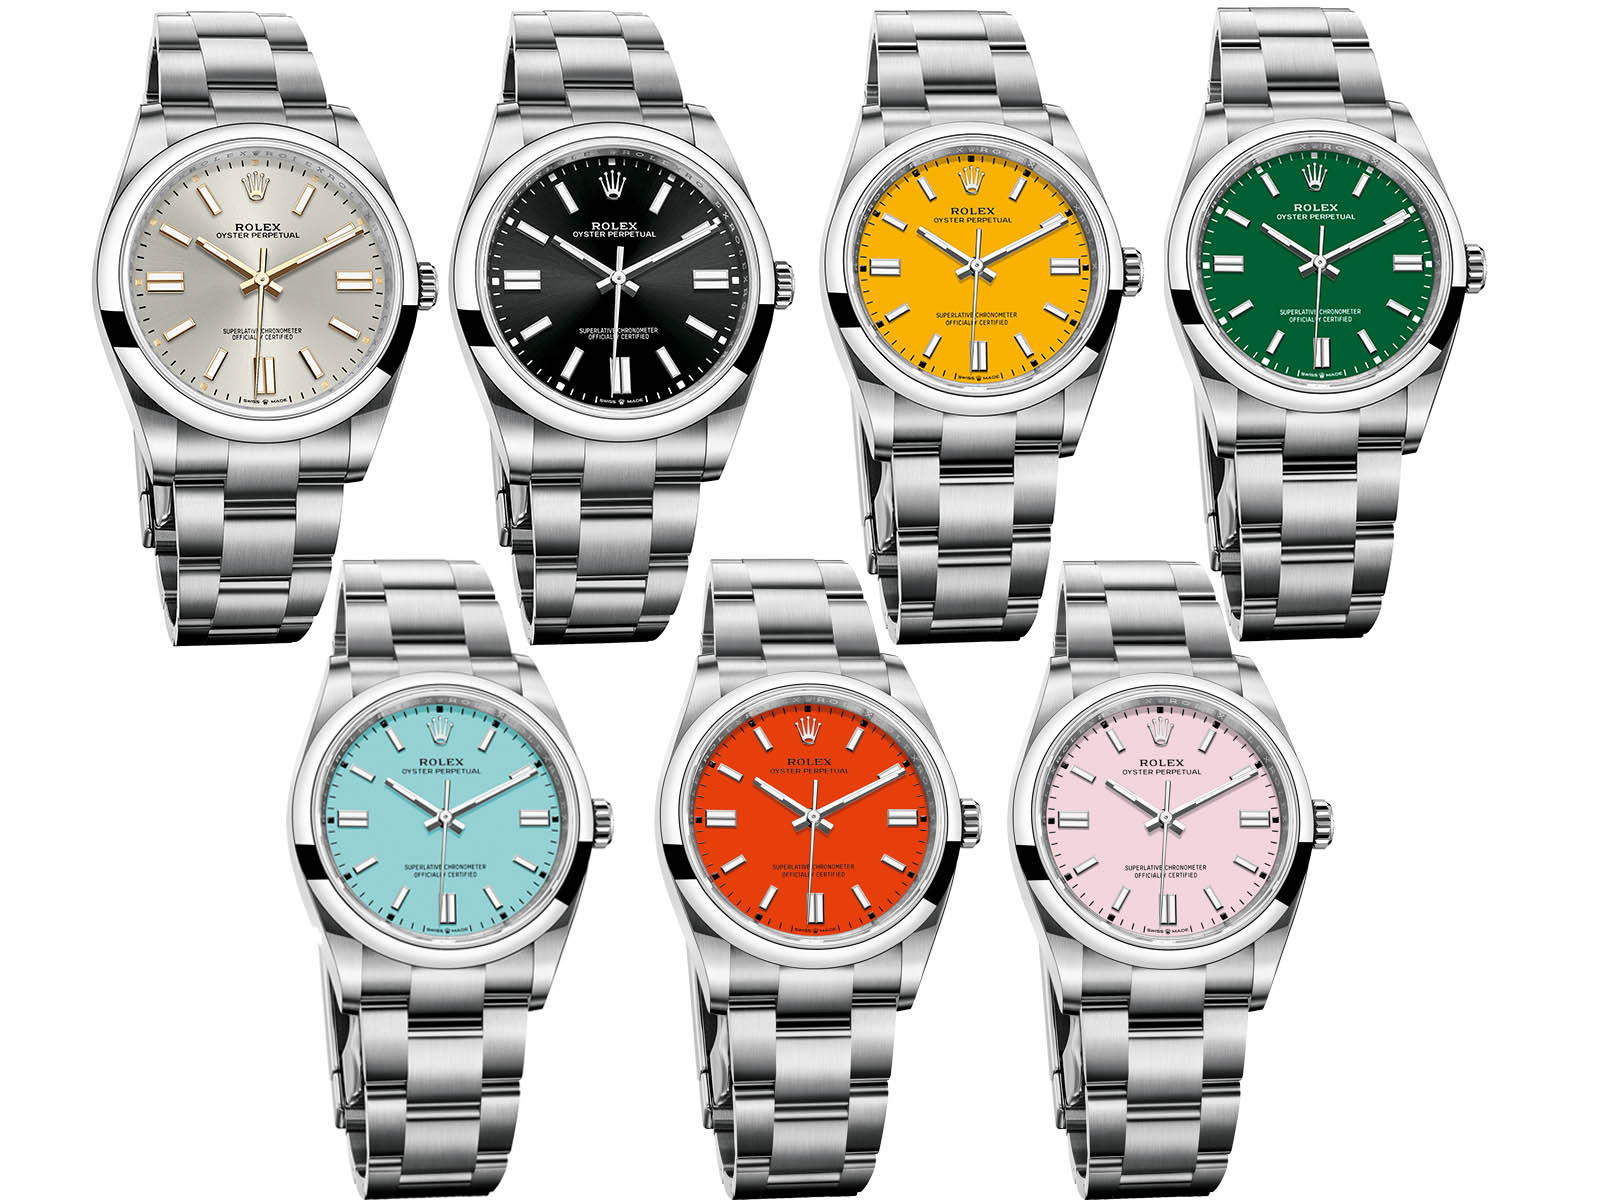 rolex-oyster-perpetual-2020-new-models-1.jpg